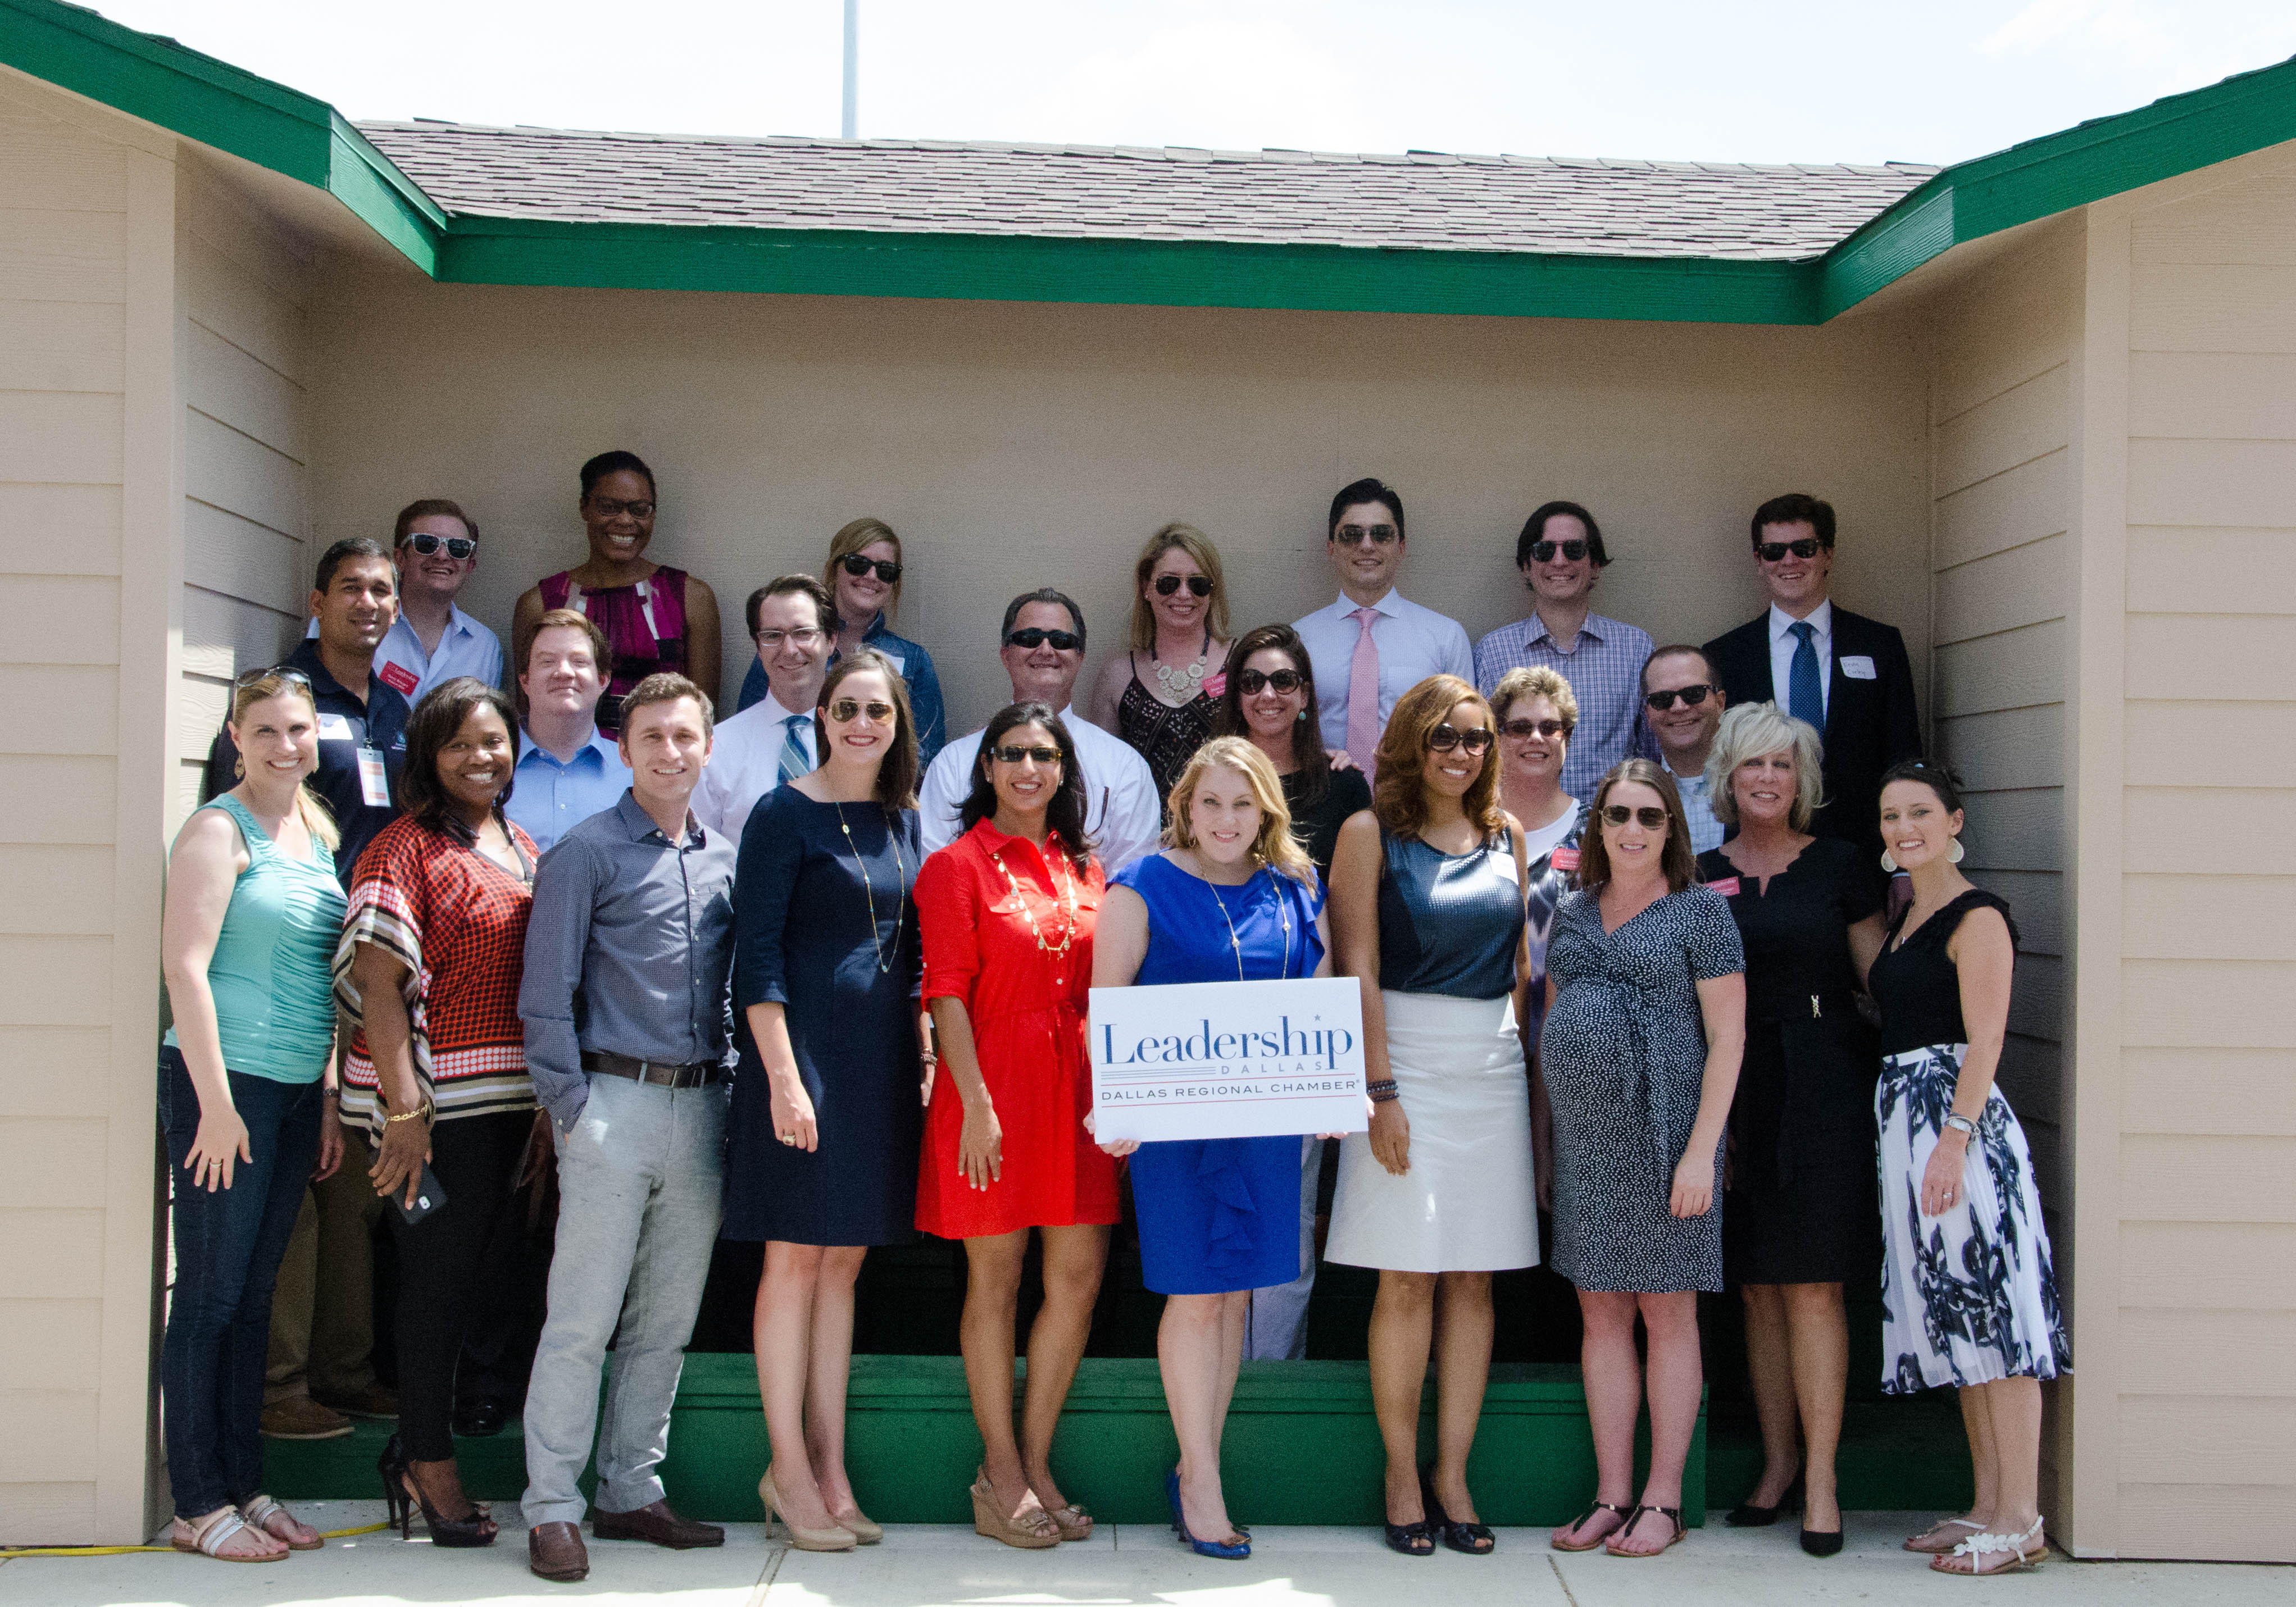 Press releases dallas regional chamber the leadership dallas class of 2015 dedicated its class project at vogel alcove on friday malvernweather Image collections